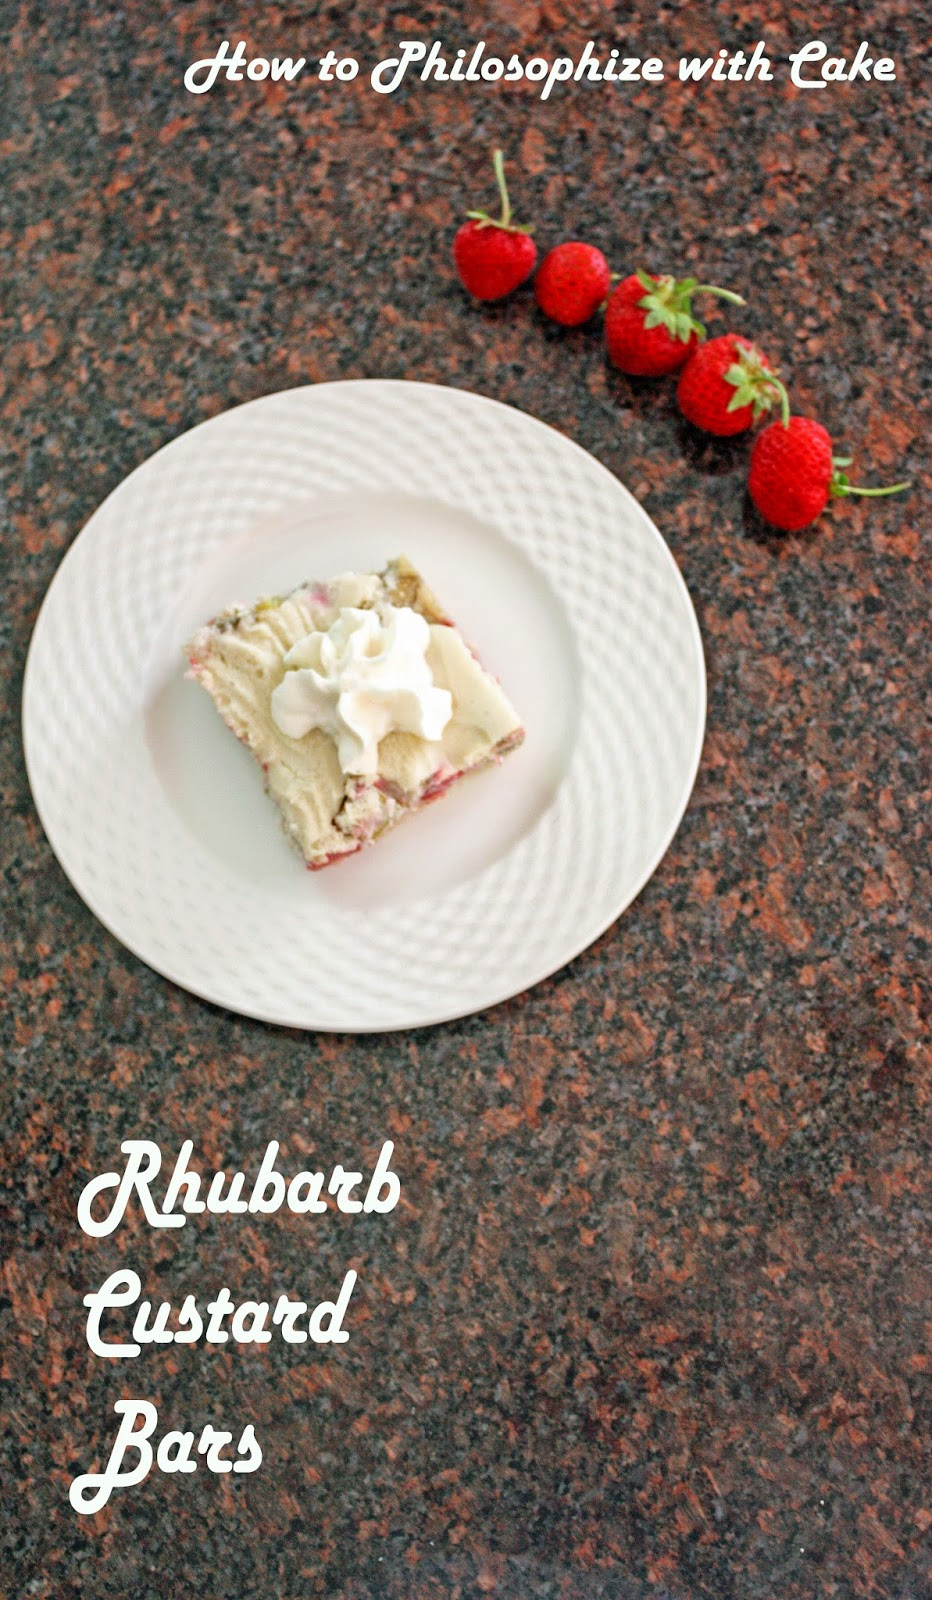 how to philosophize with cake rhubarb strawberry custard bars